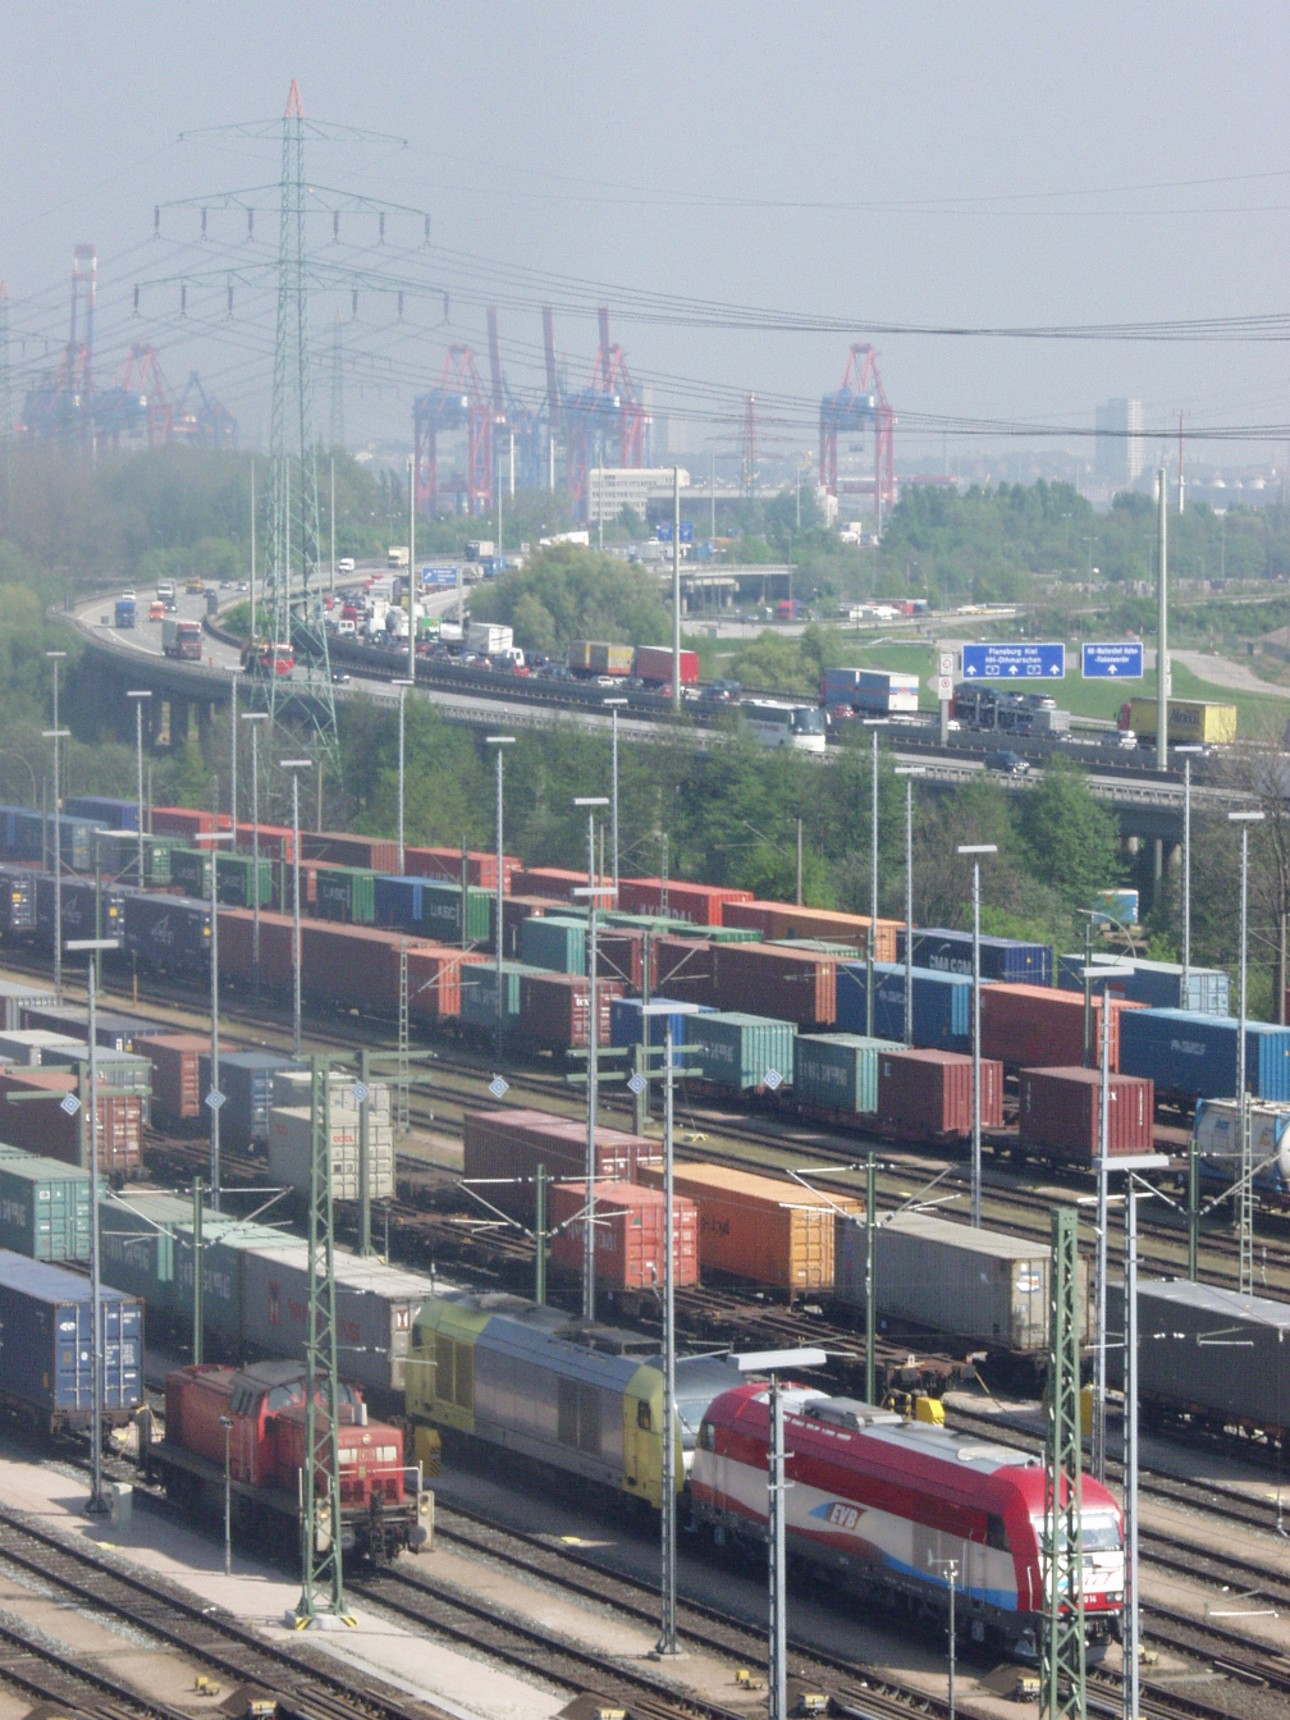 Hamburg is Europe's biggest rail intermodal seaport